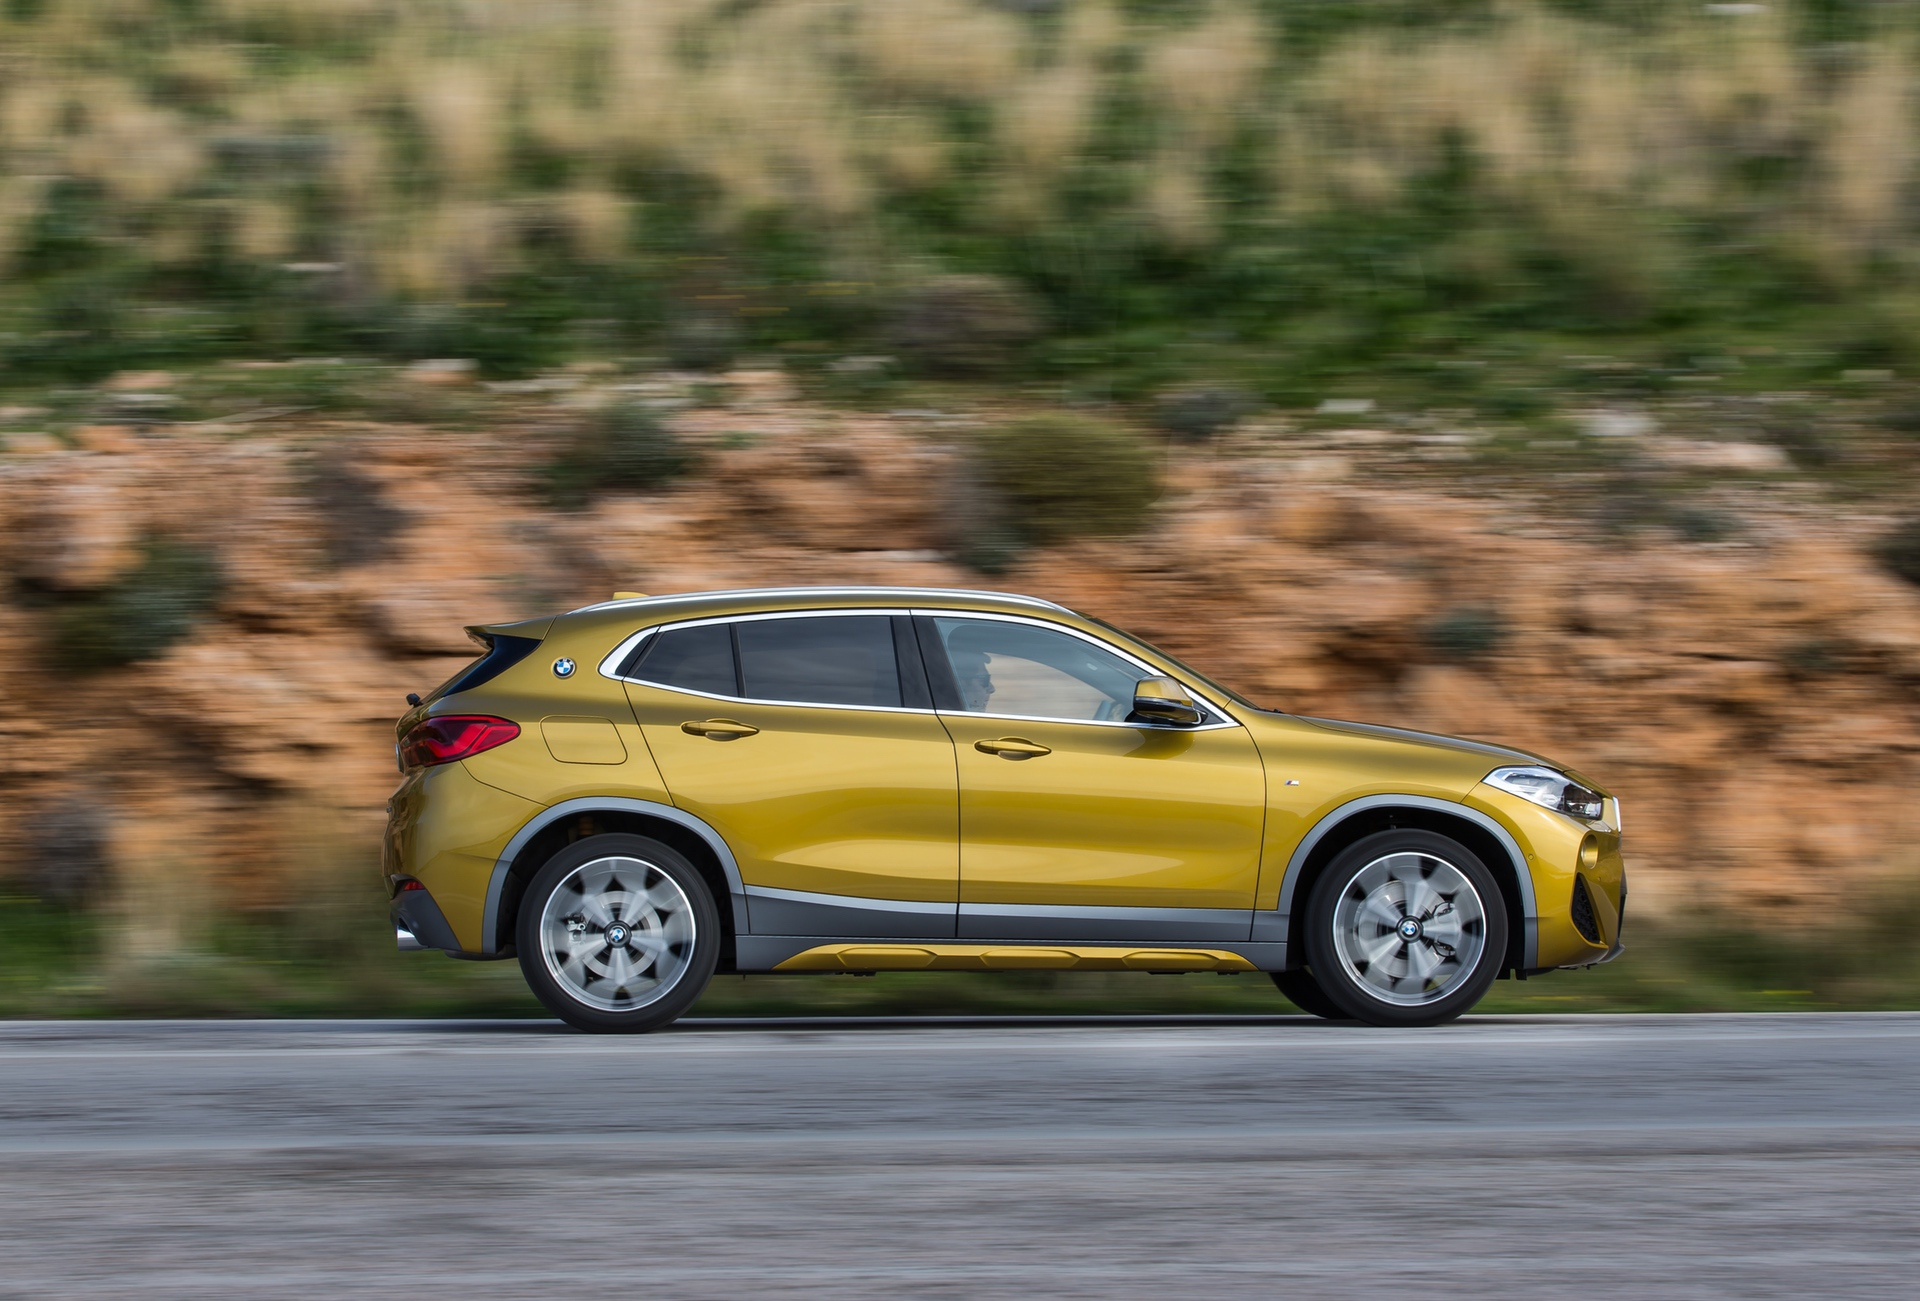 BMW_X2_Greek_presskit_0093